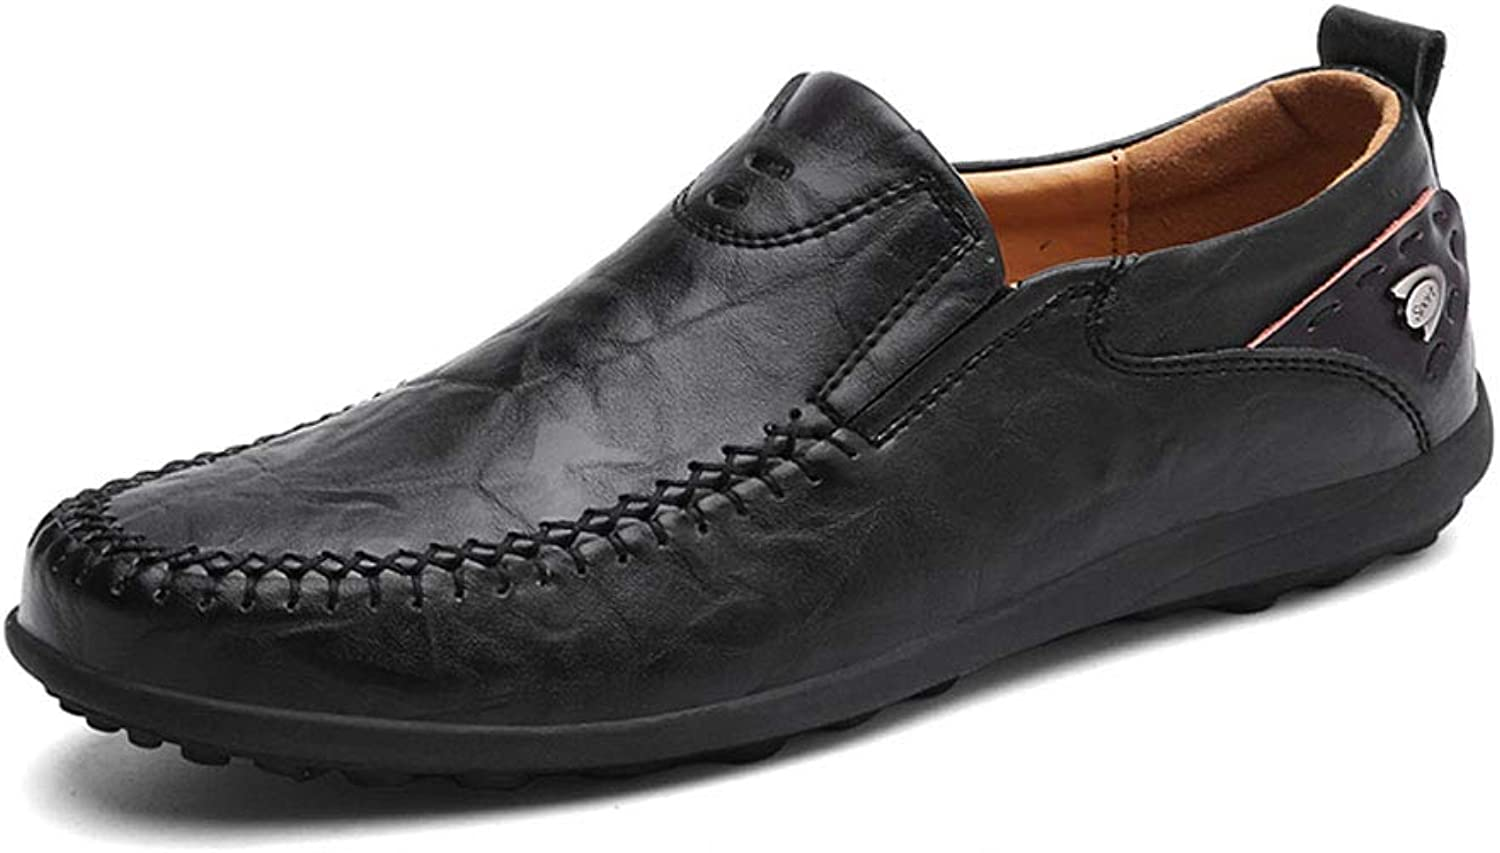 ChengxiO Leather shoes Men's New Business Casual shoes England Dress Youth Men's shoes 47 Extra Large Size Men's Bean Lazy Driving shoes